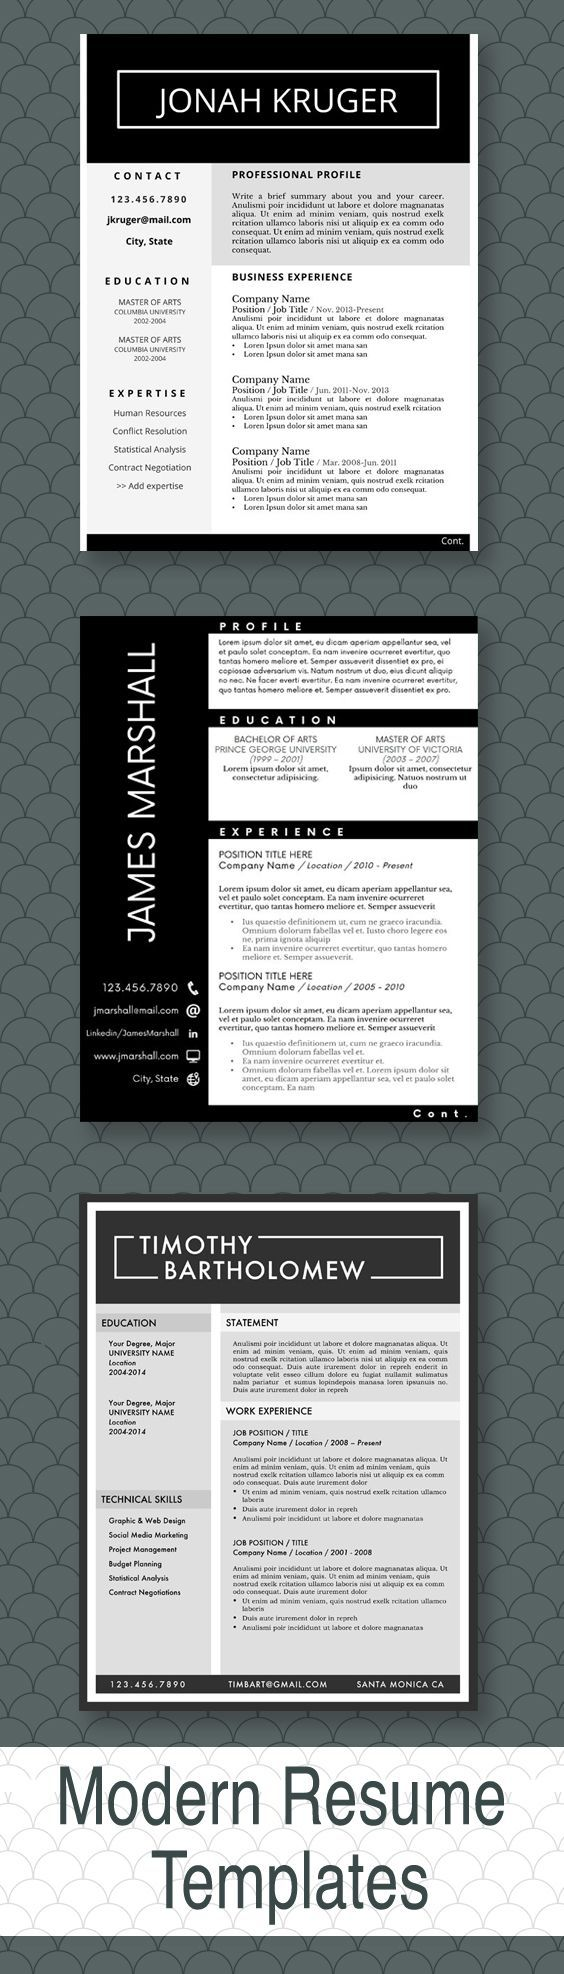 love these resumes totally eye catching